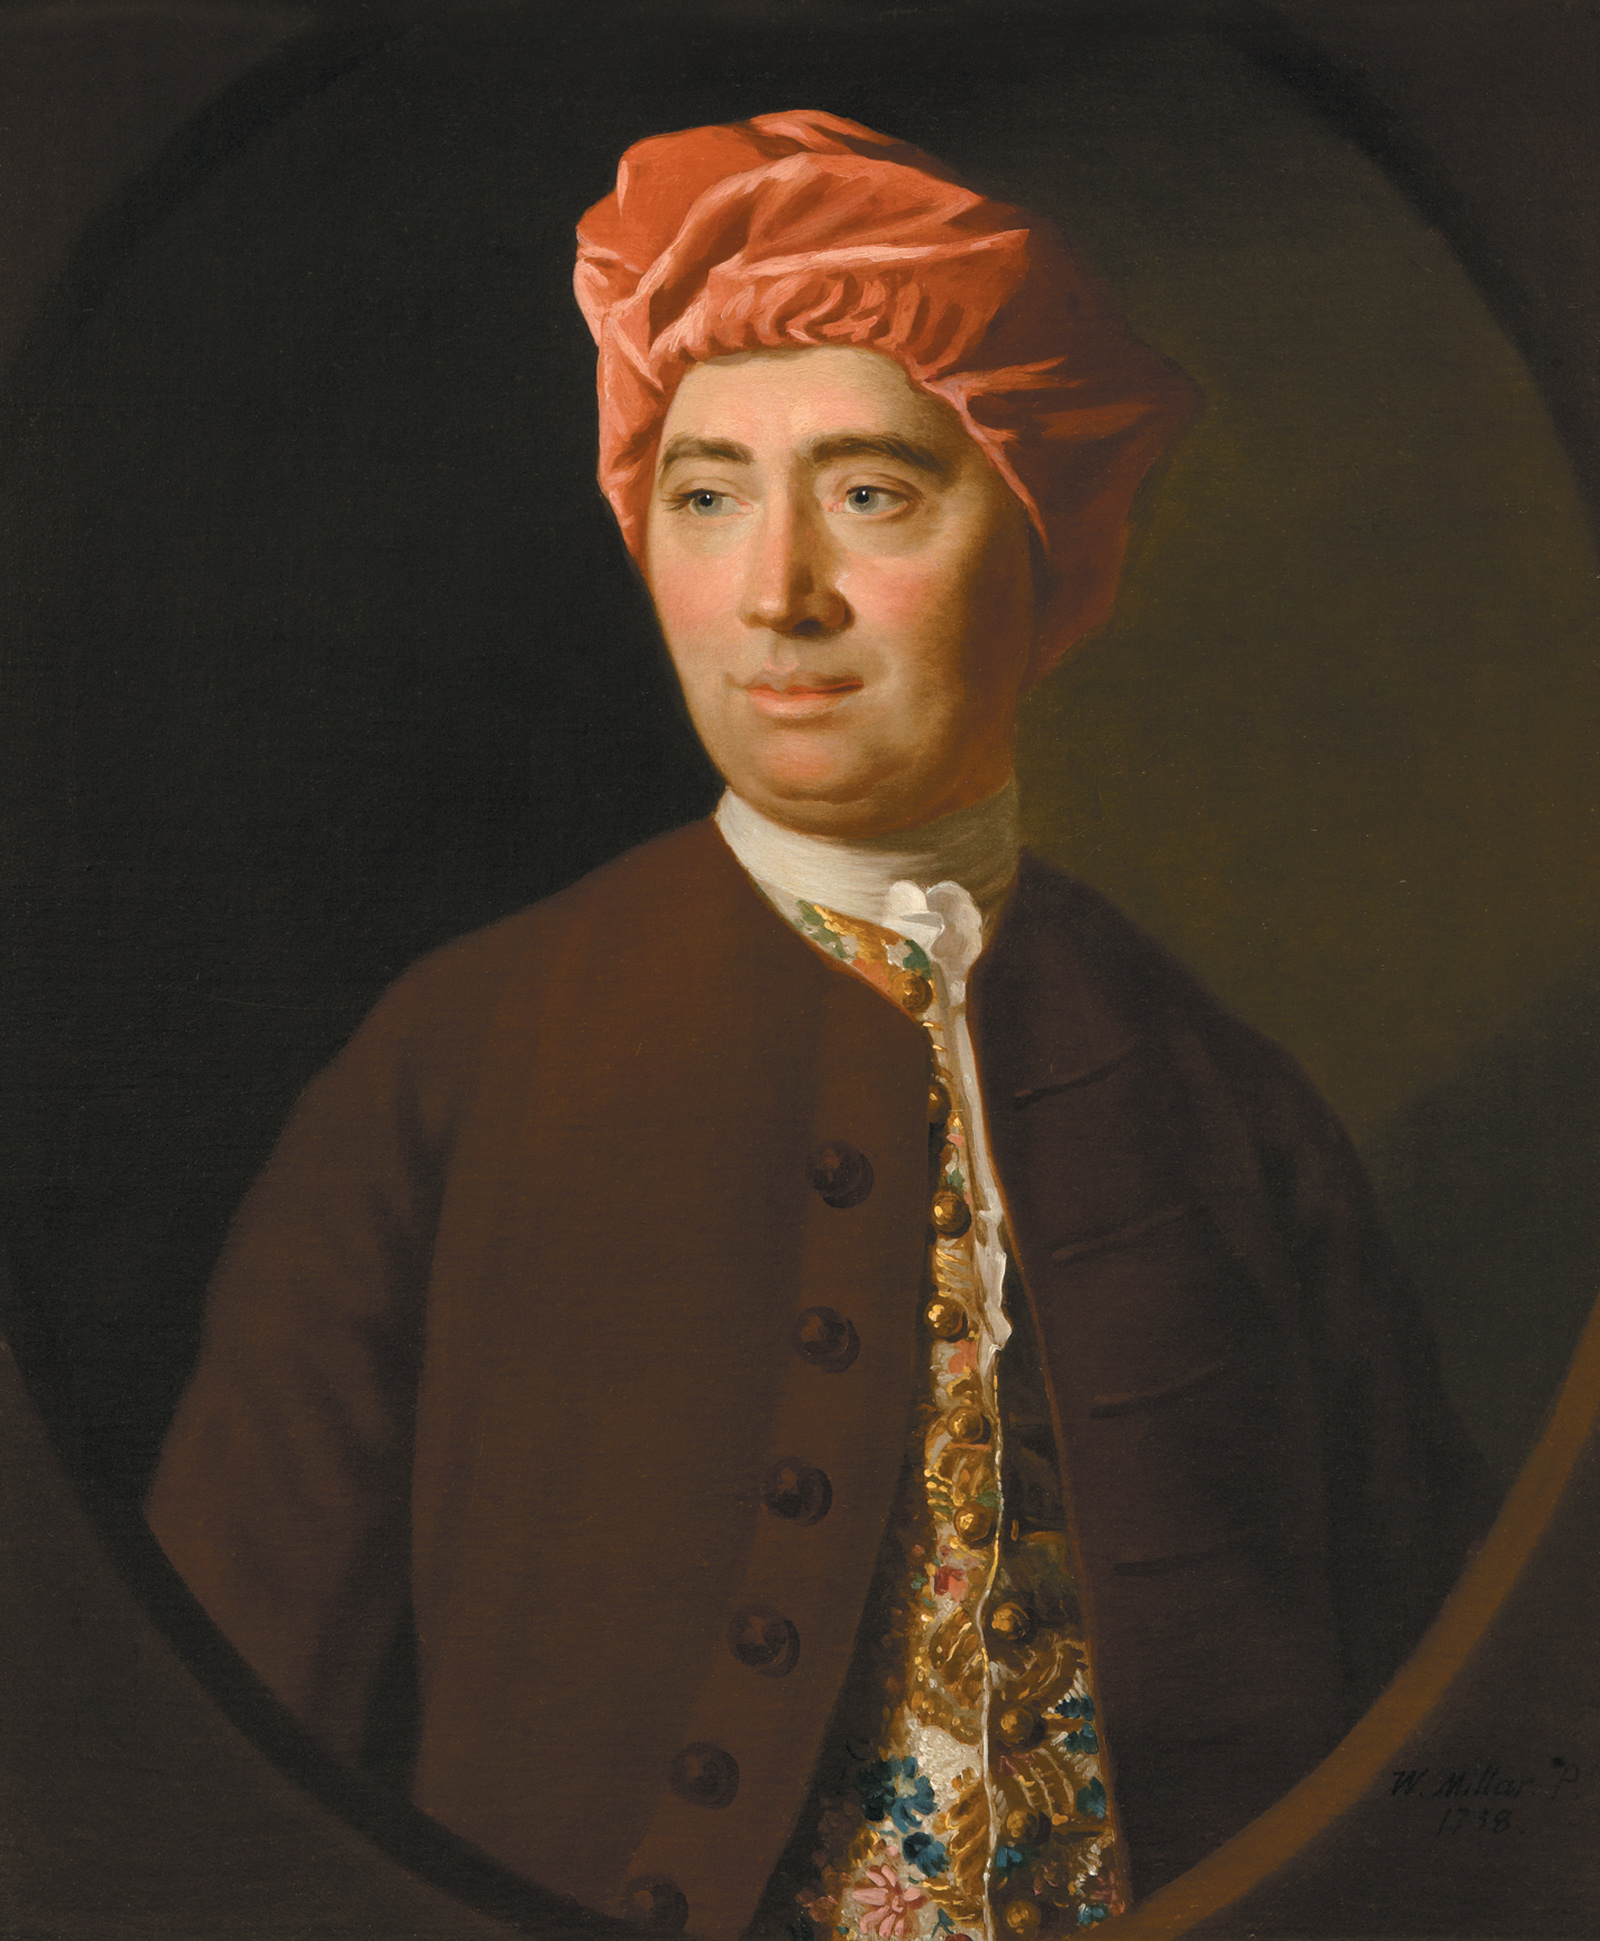 David Hume; portrait by Allan Ramsay, 1754